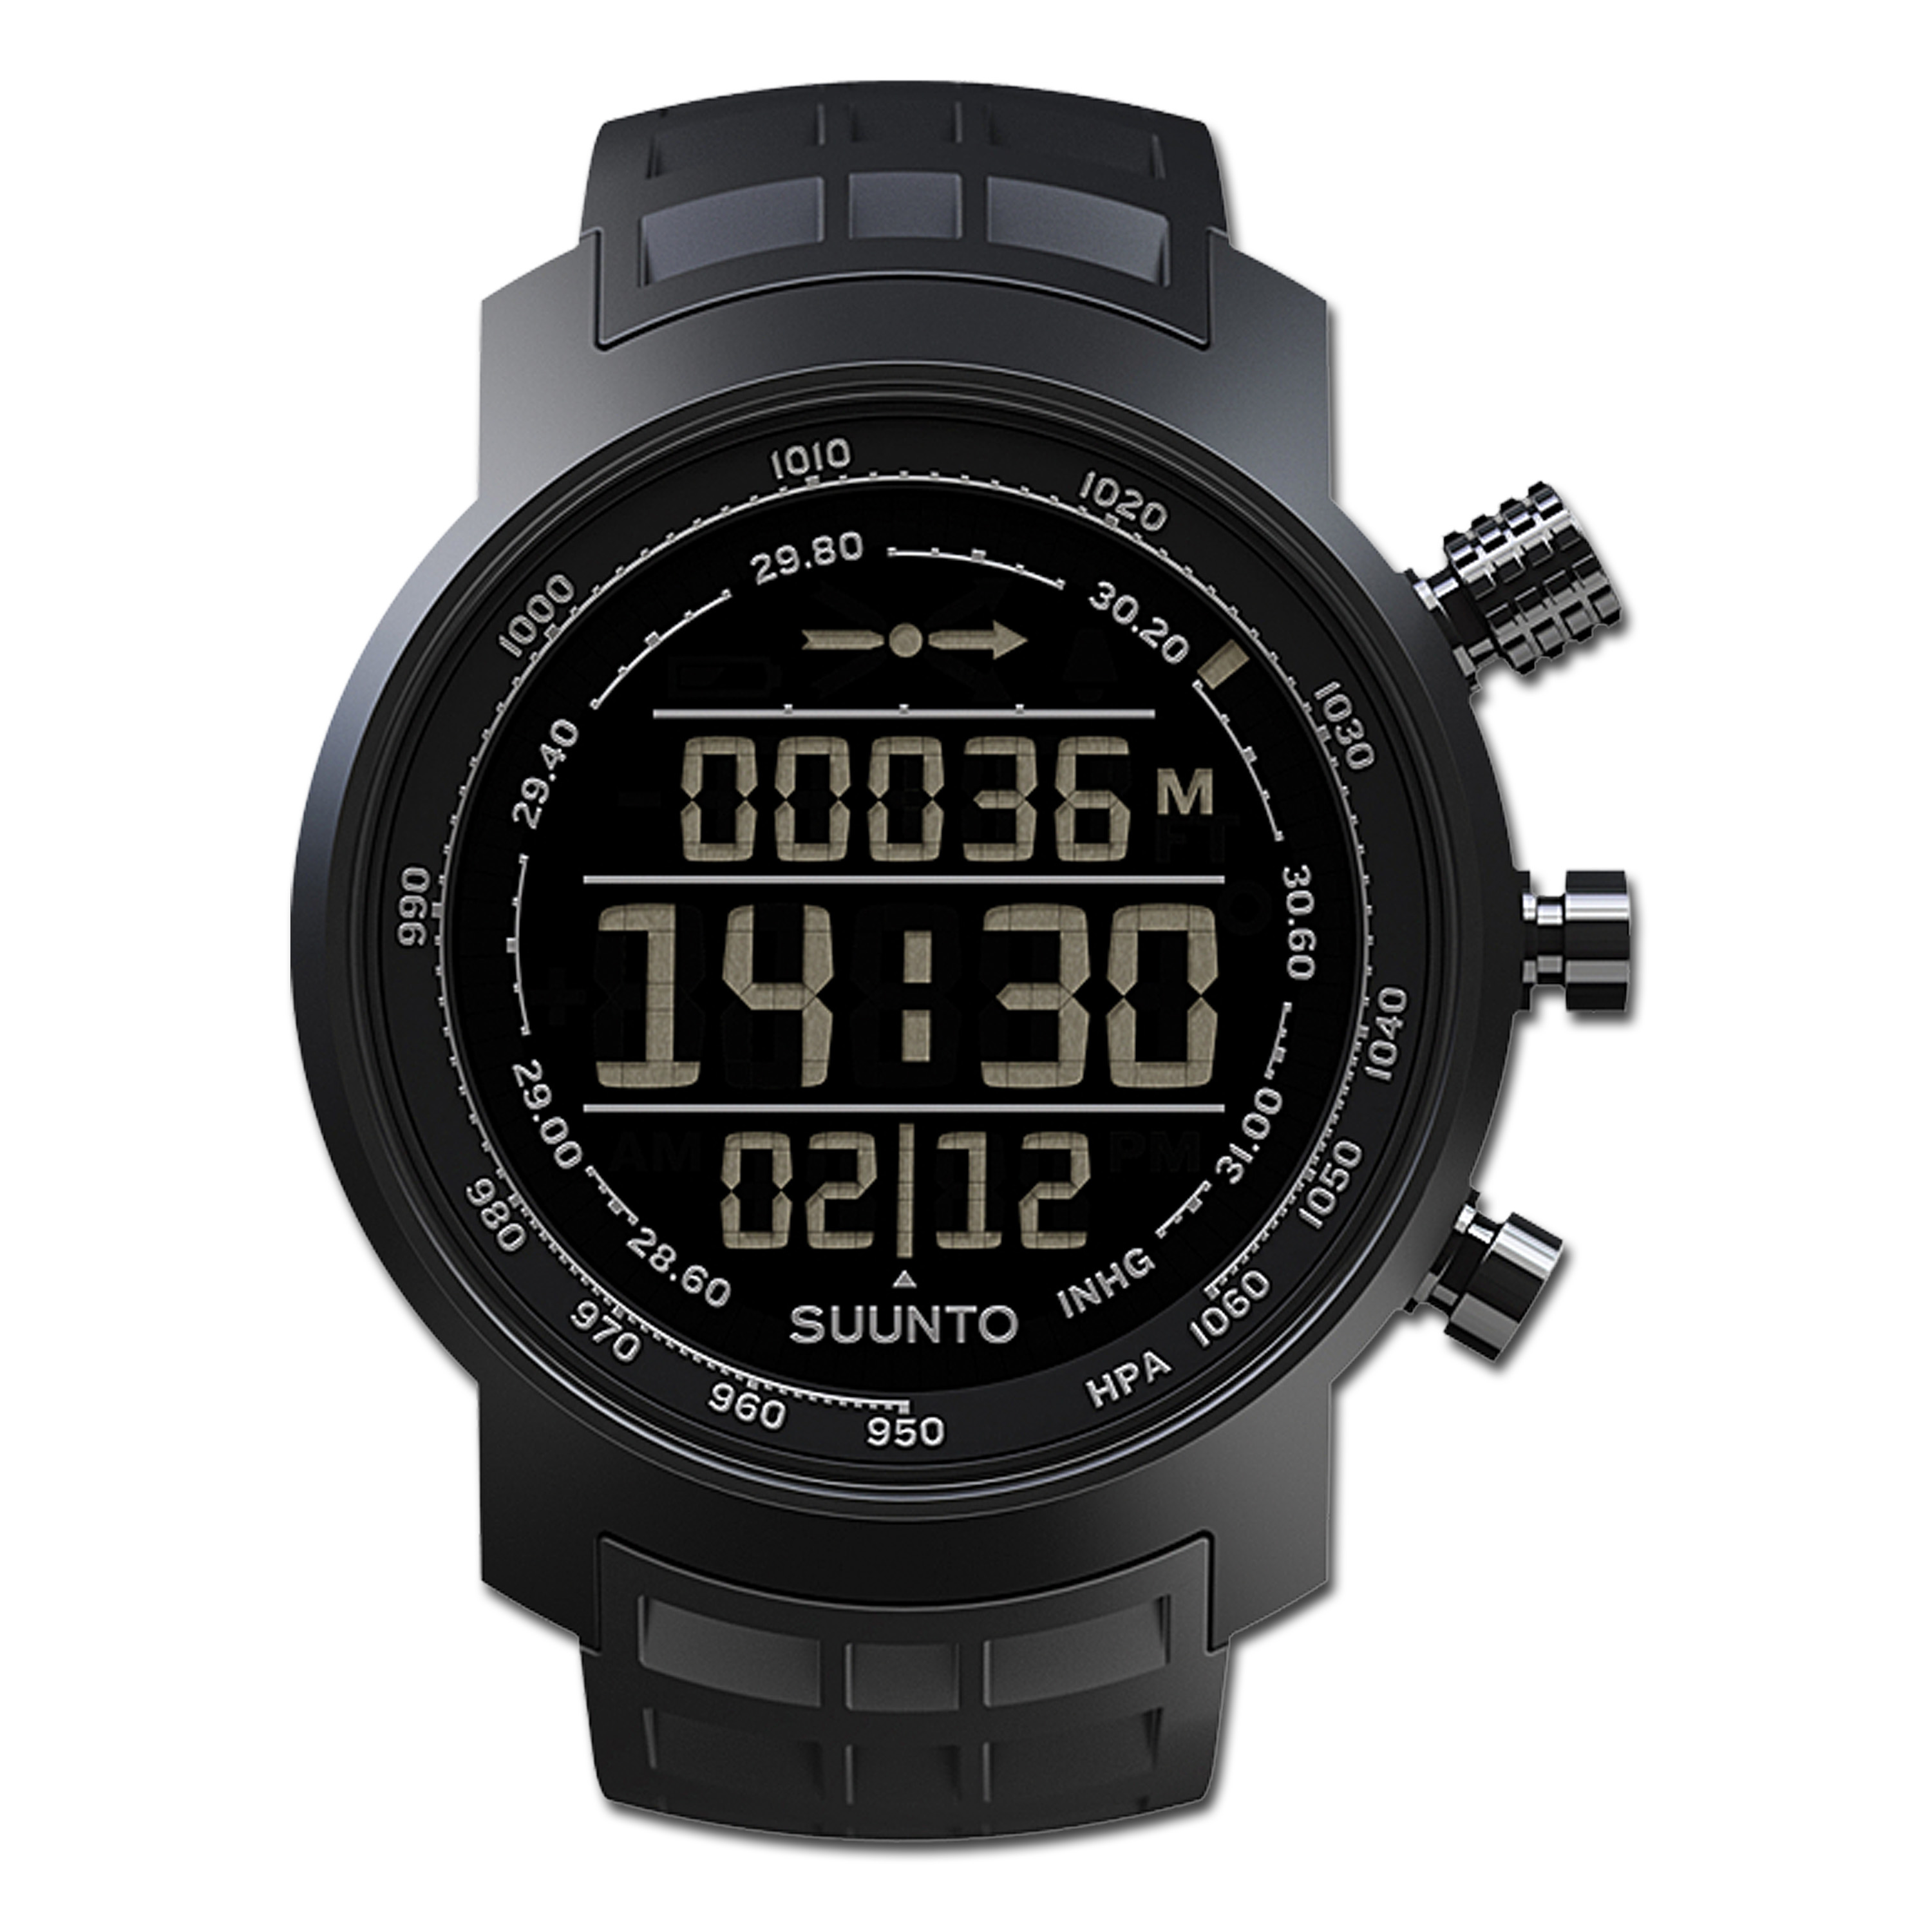 Uhr Suunto Elementum Terra All black